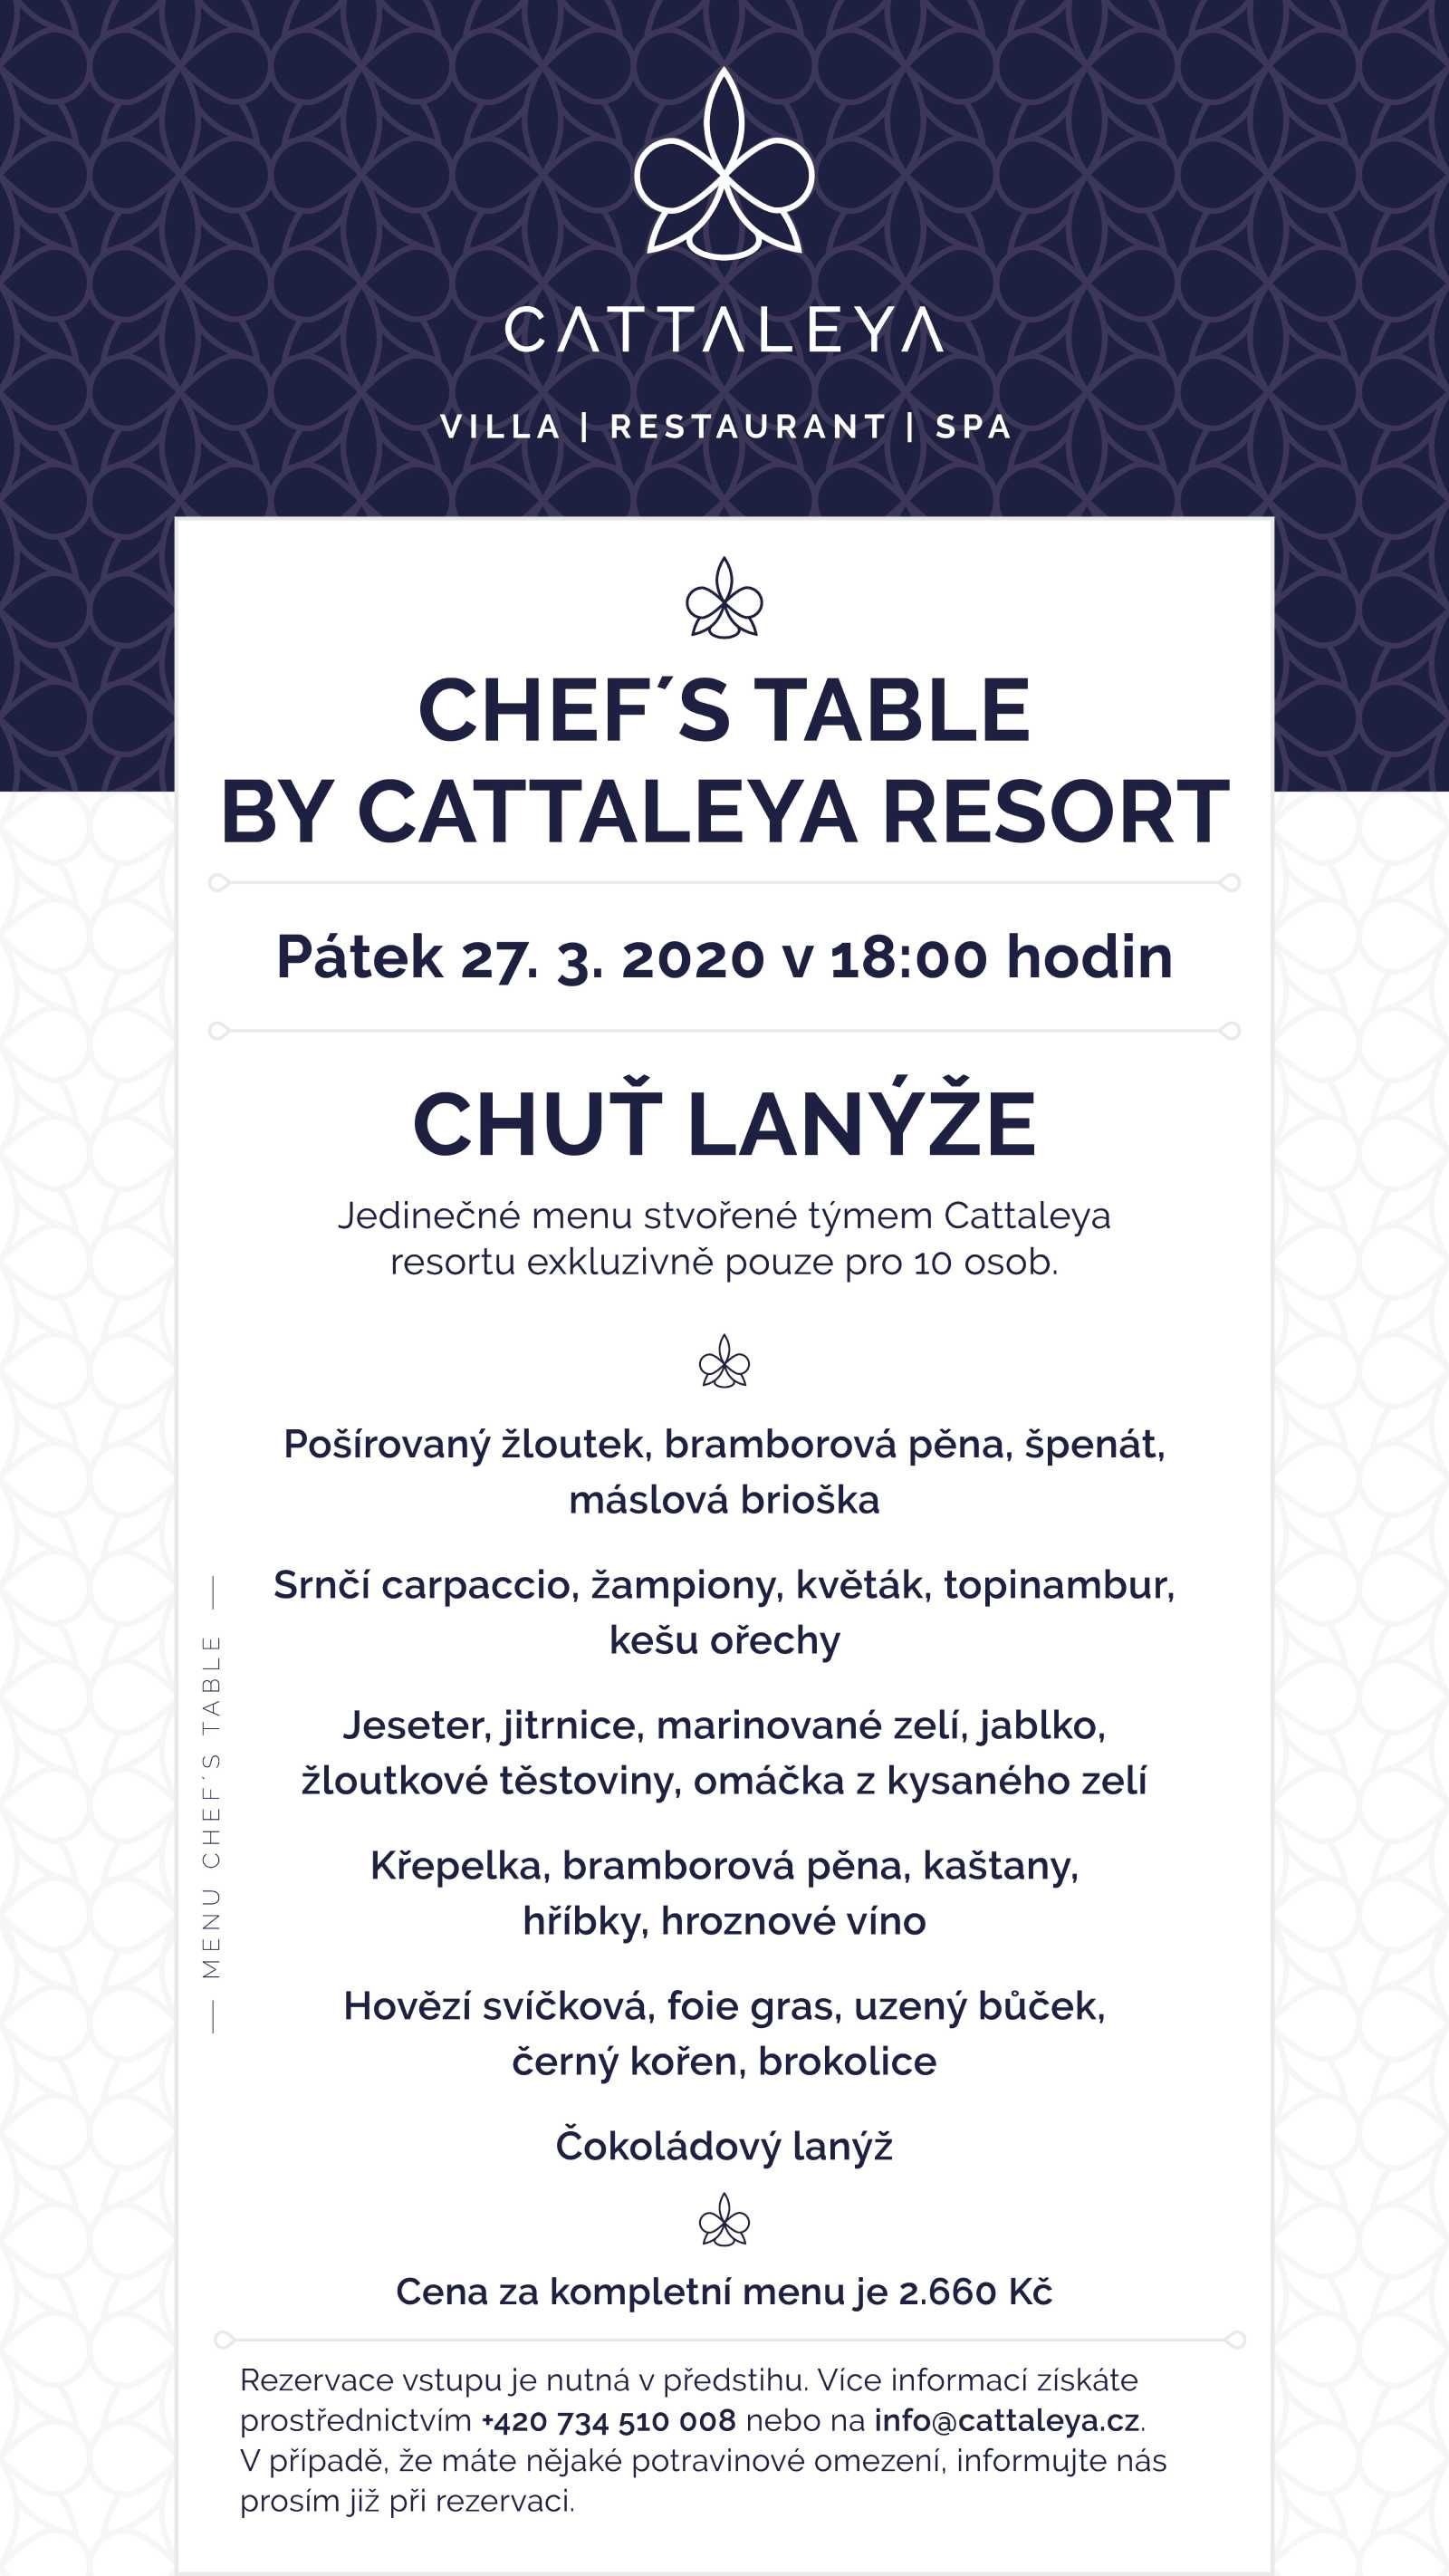 Chefs table_Chut lanyze__menu